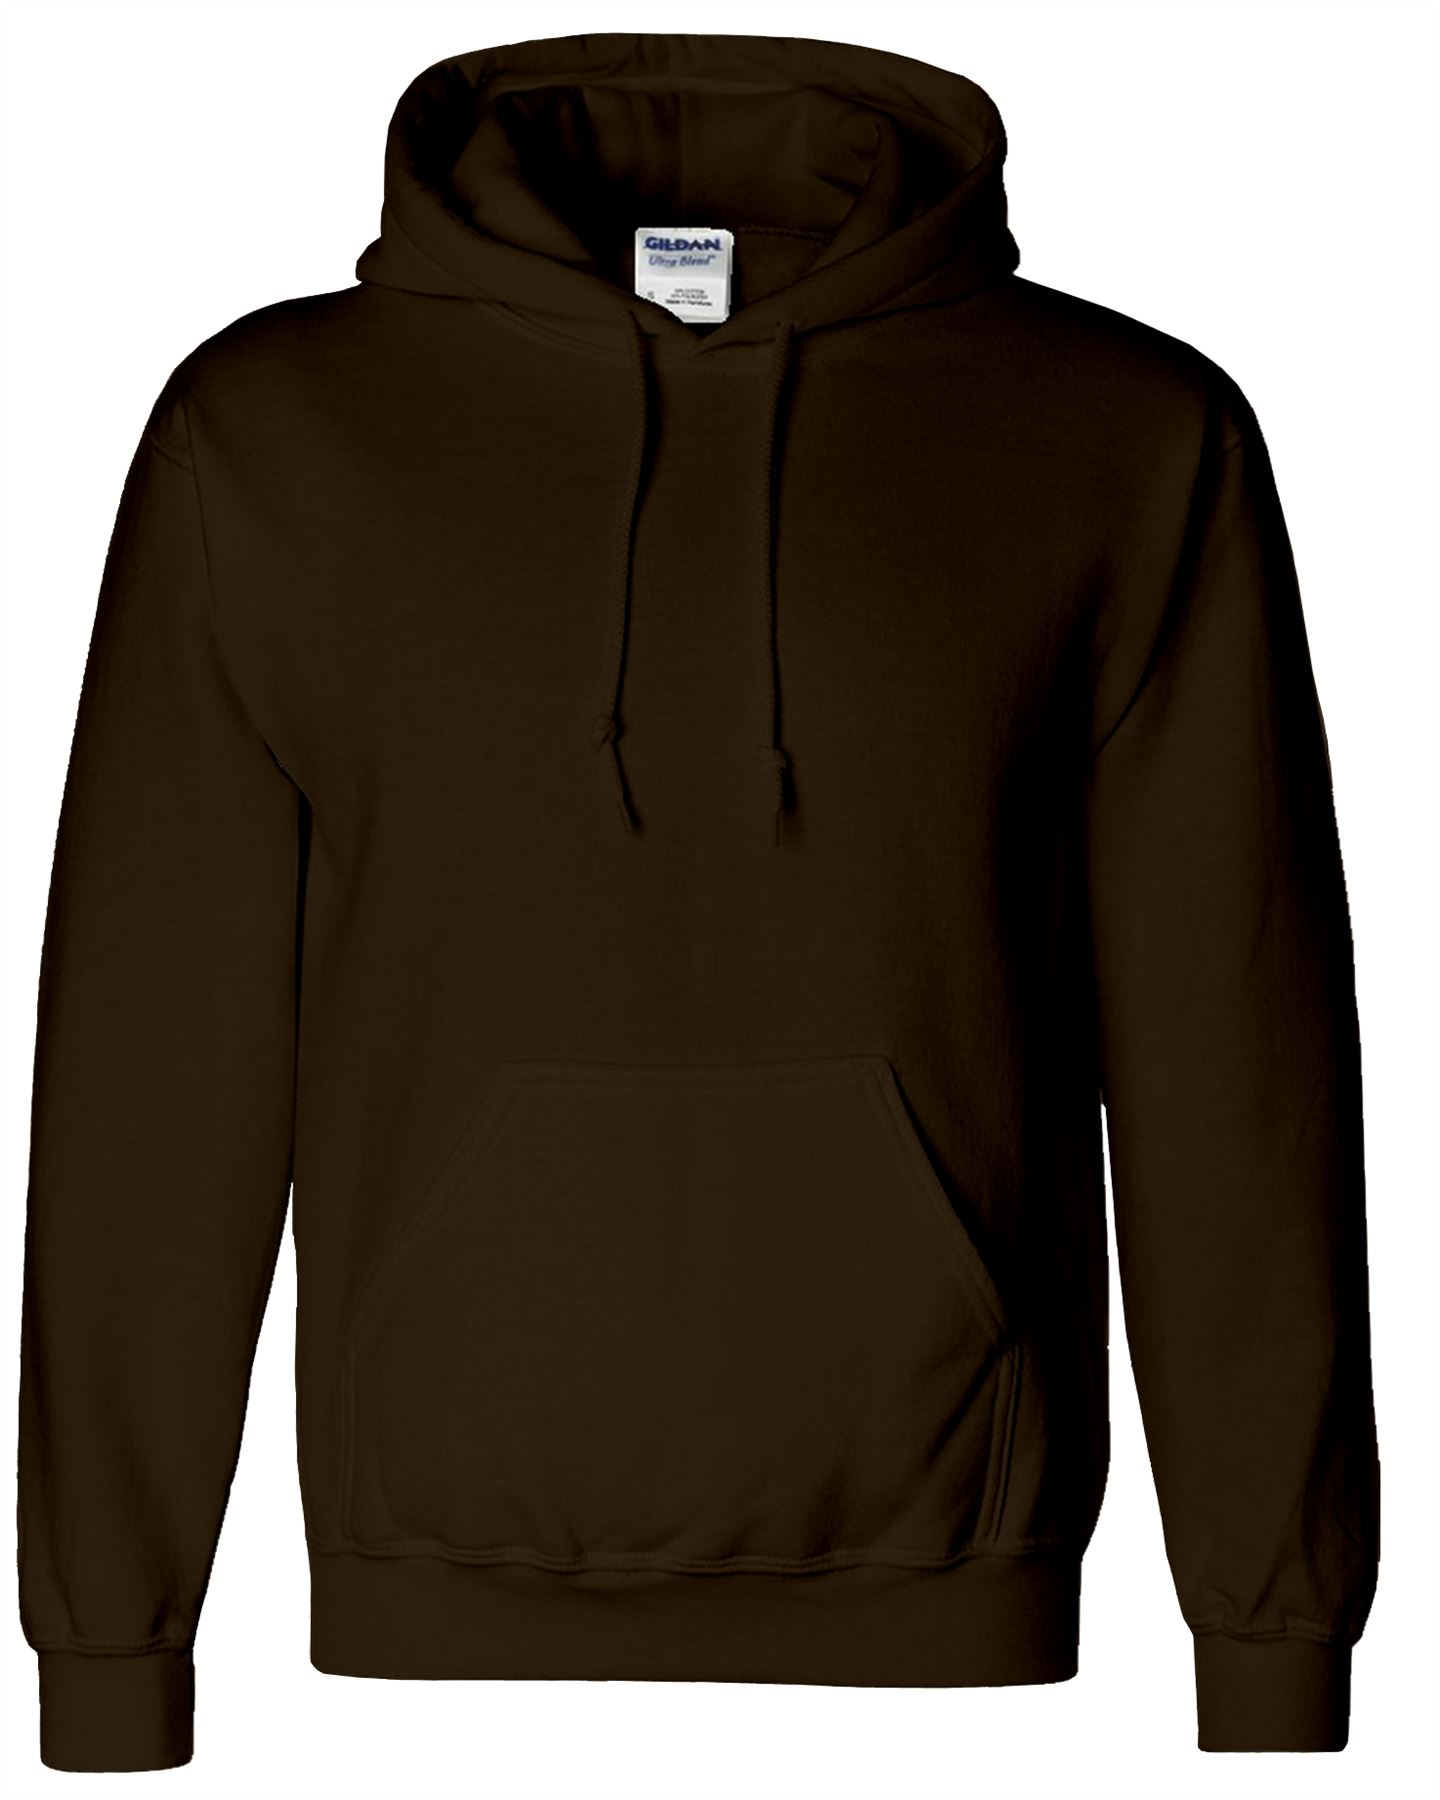 Find great deals on eBay for sweats and hoodies. Shop with confidence.